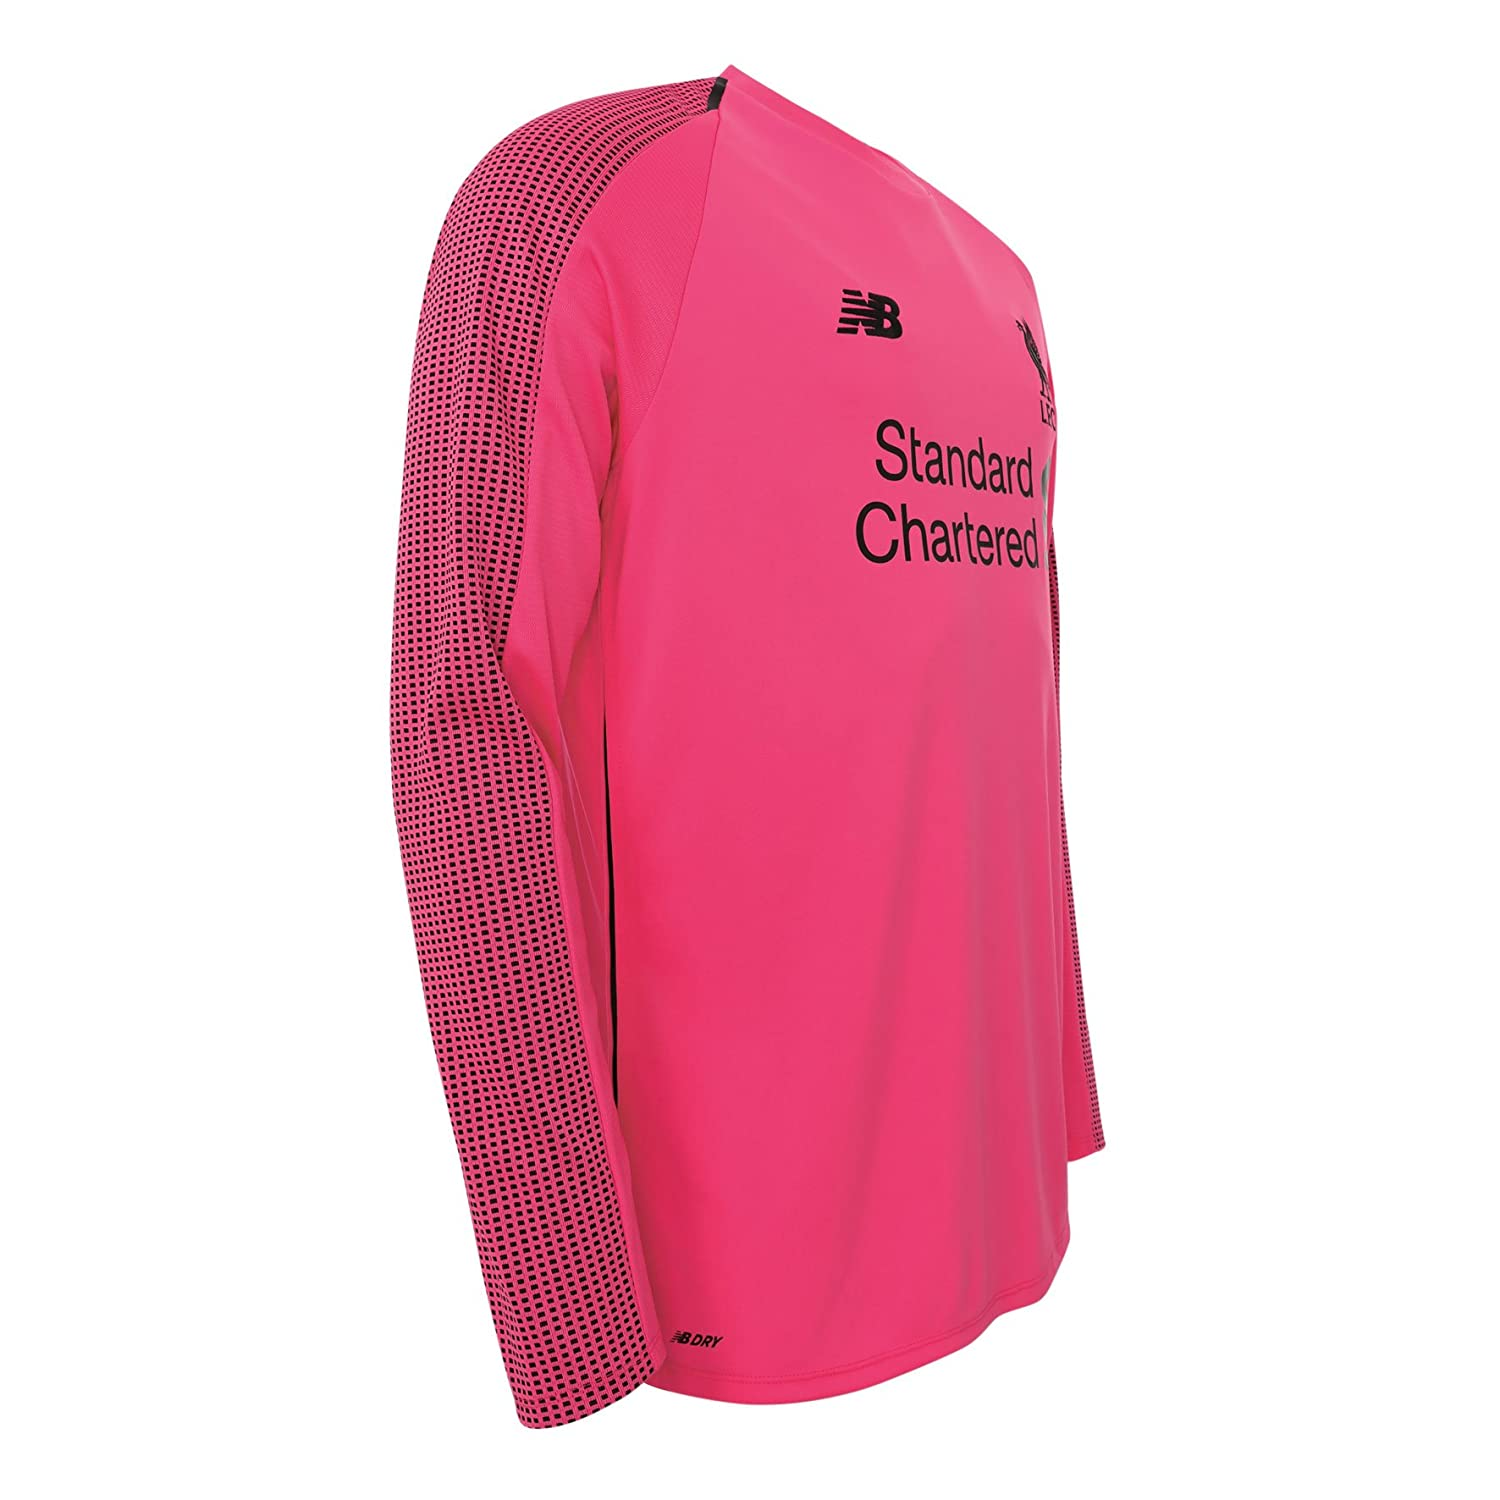 low priced 3a650 cfb47 New Balace Liverpool FC Long Sleeve Pink Boys Football ...